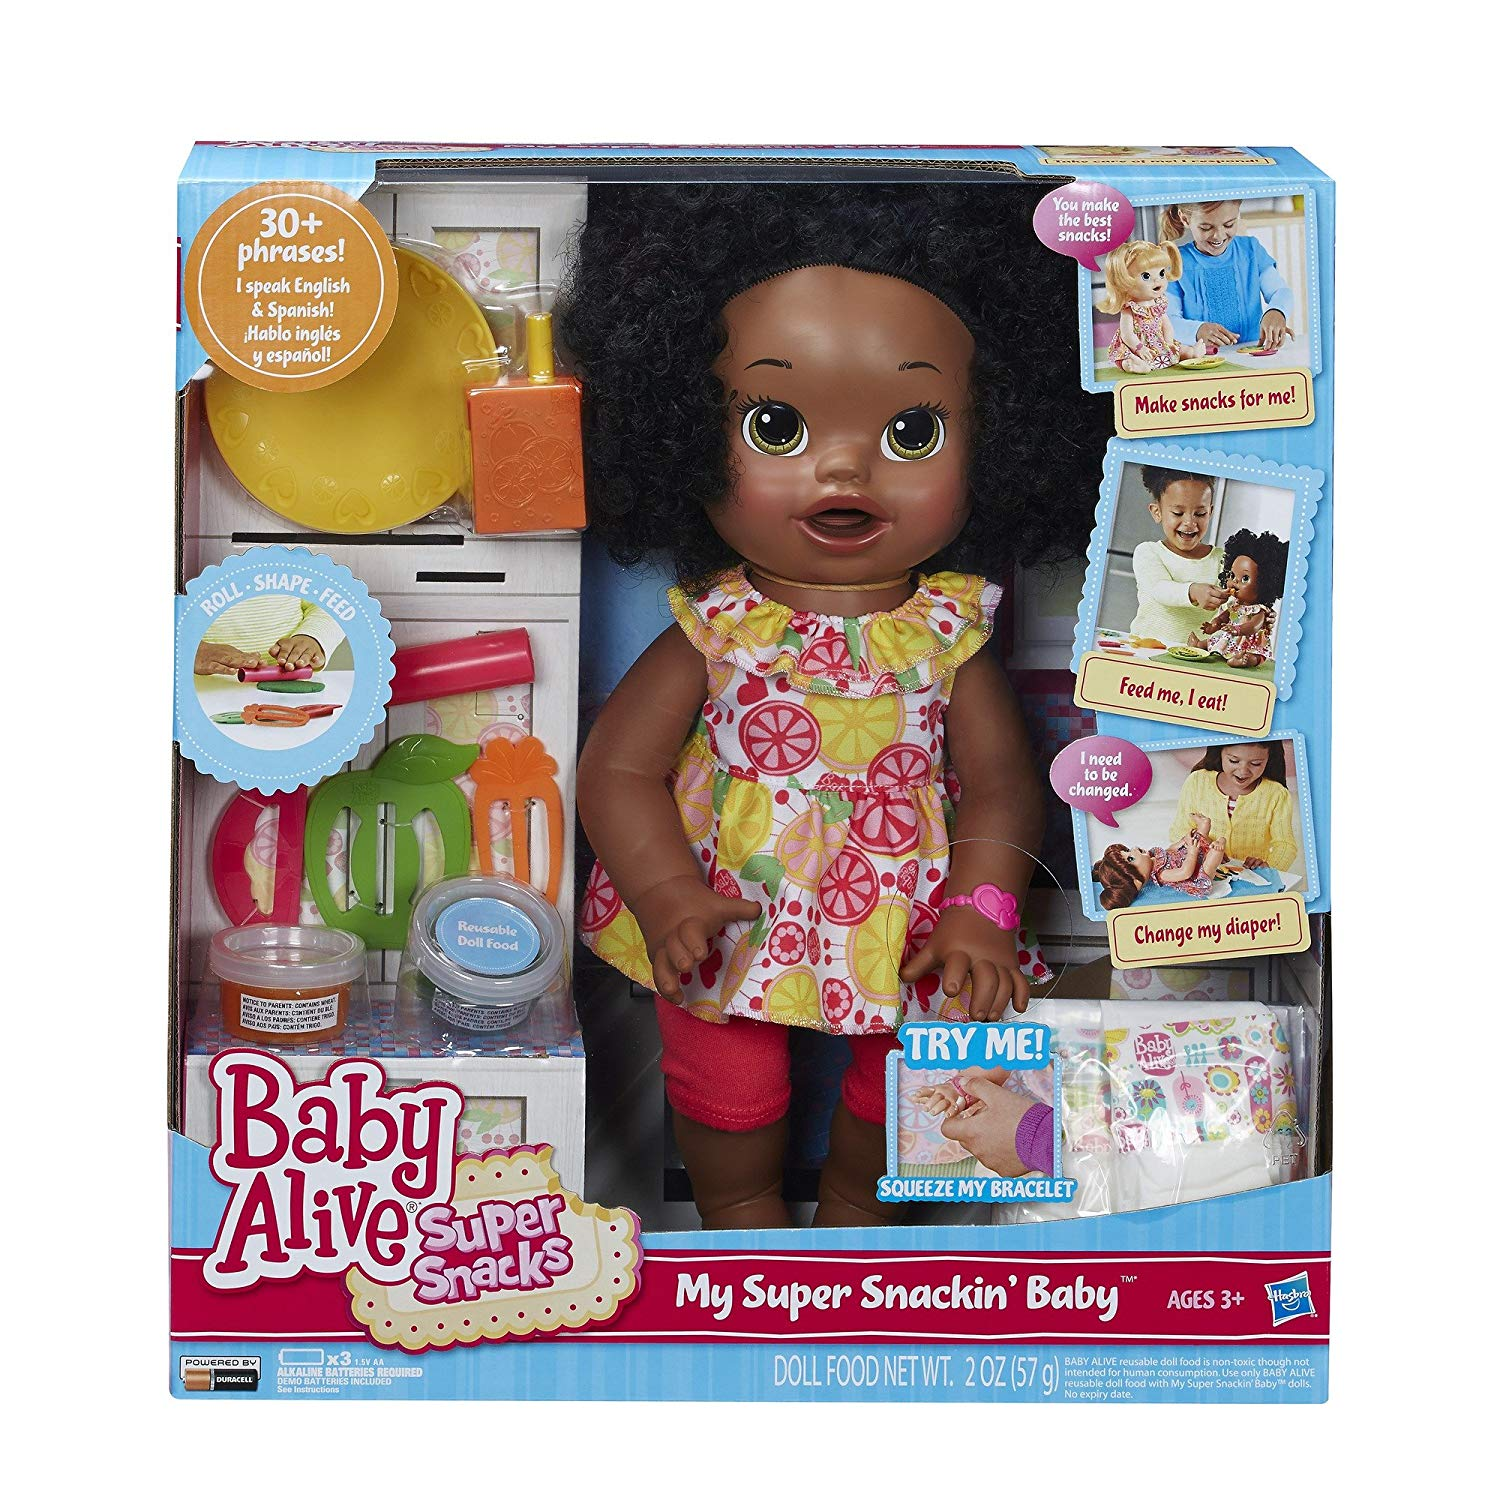 Baby Alive Super Snacks Snackin' Sara African American Doll-baby alive doll, girls dolls, girls toys, girls gifts, interactive dolls, girls baby dolls